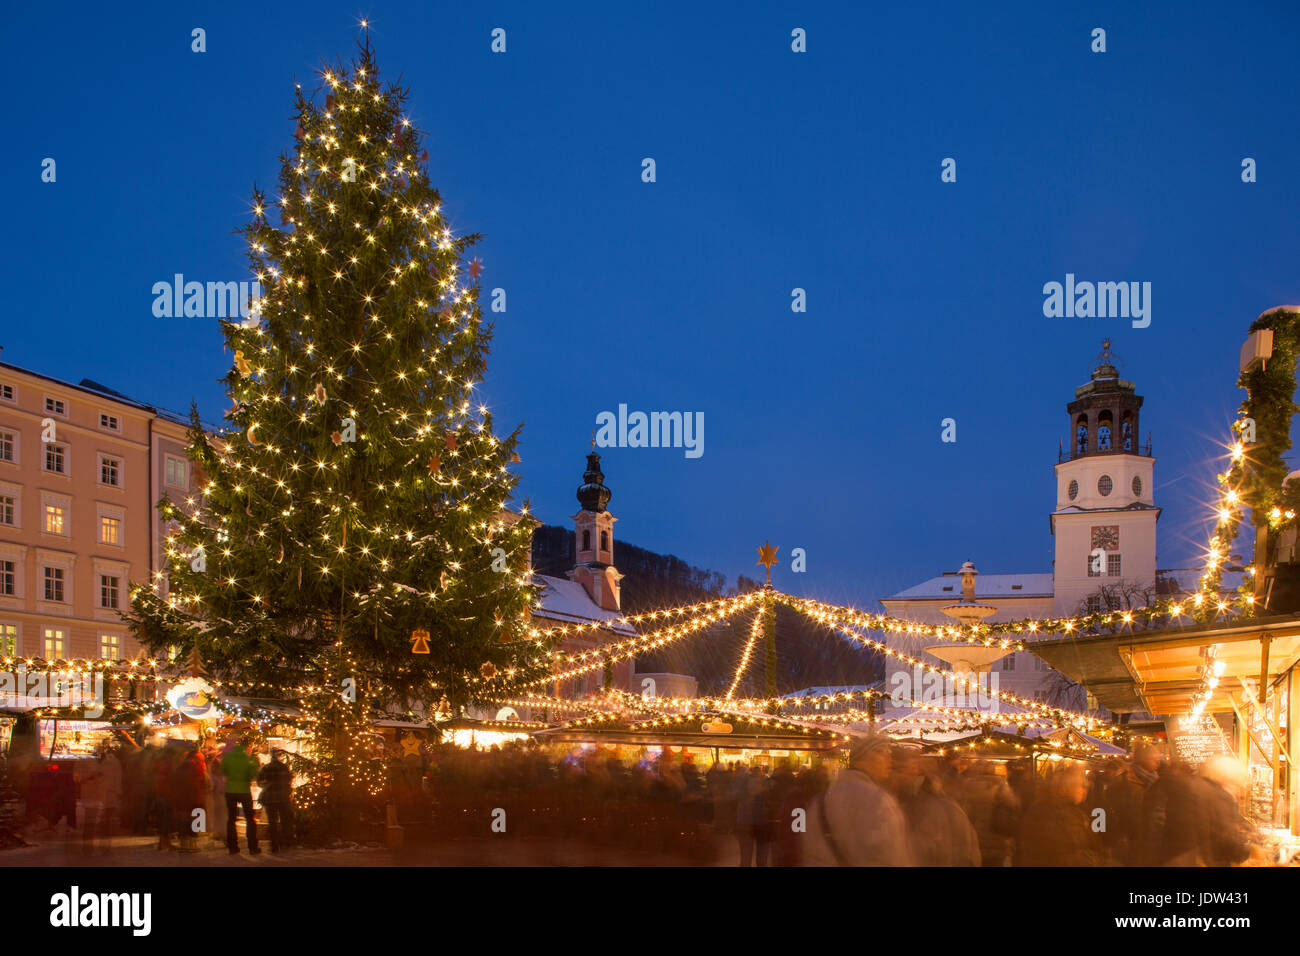 Christmas Tree In Christmas Market, Salzburg, Austria